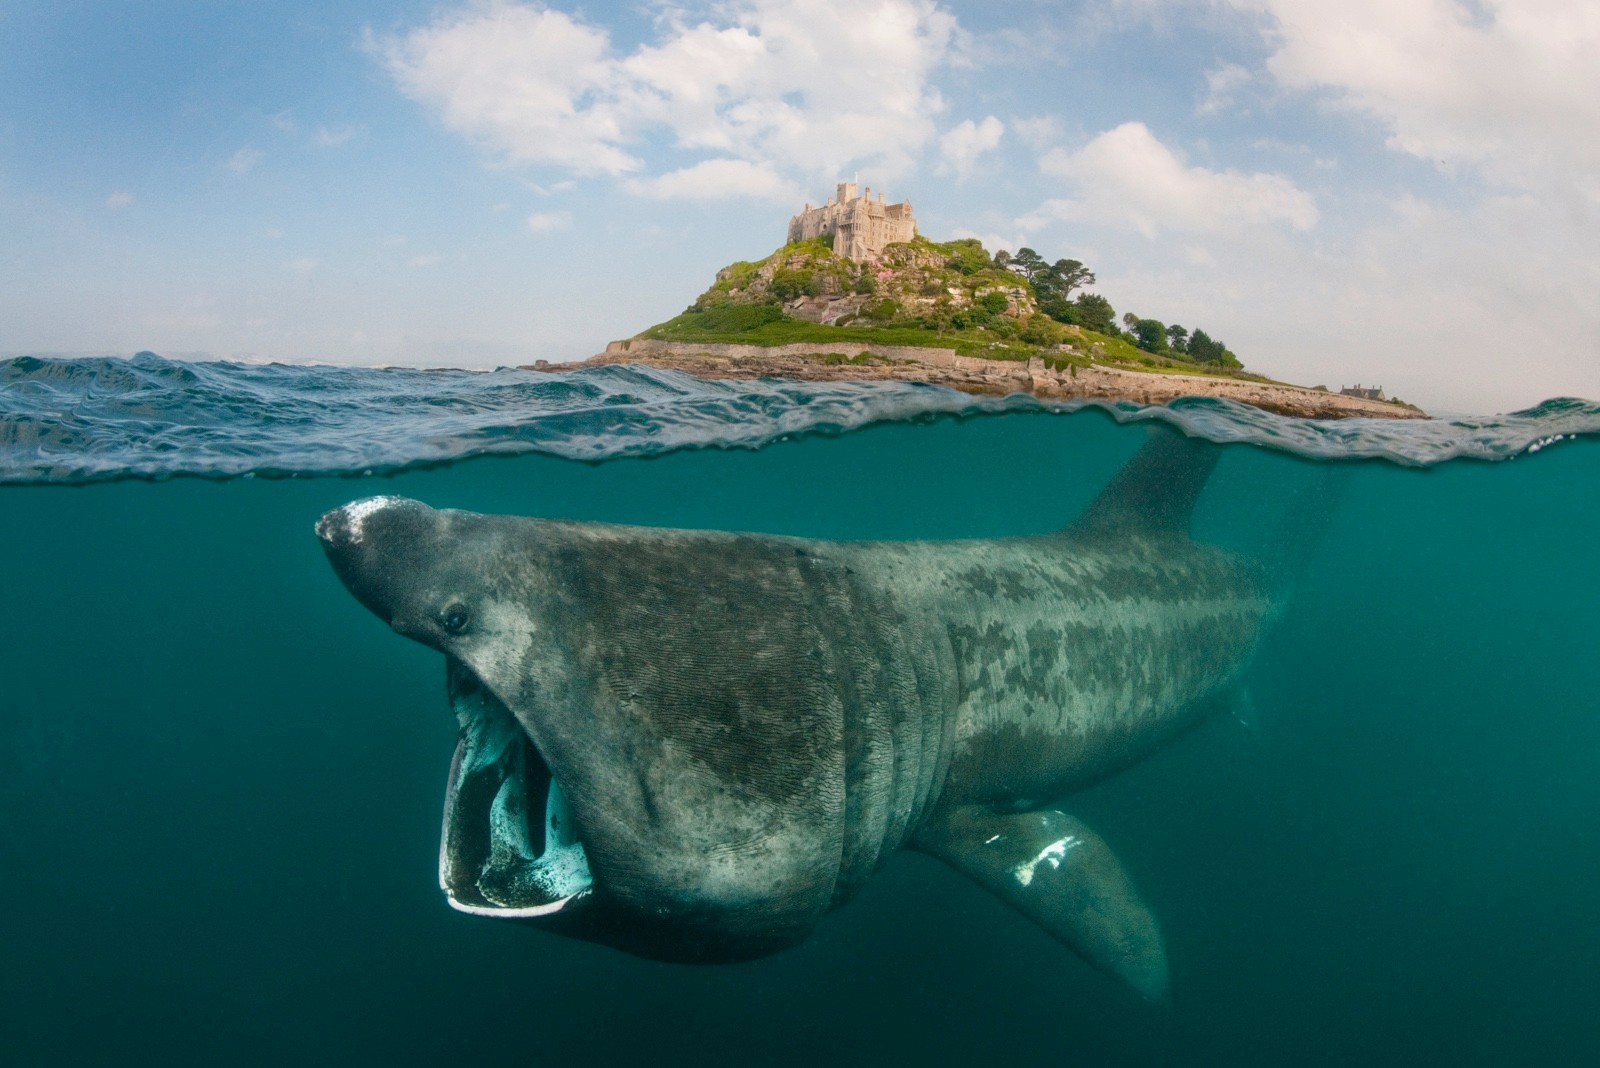 A digital composite showing a basking shark (Ceterhinus maximus) feeding on plankton around St Michael's Mount, Cornwall, UK.  Both halves of this image were taken on the same day, in the same area, with the same camera.